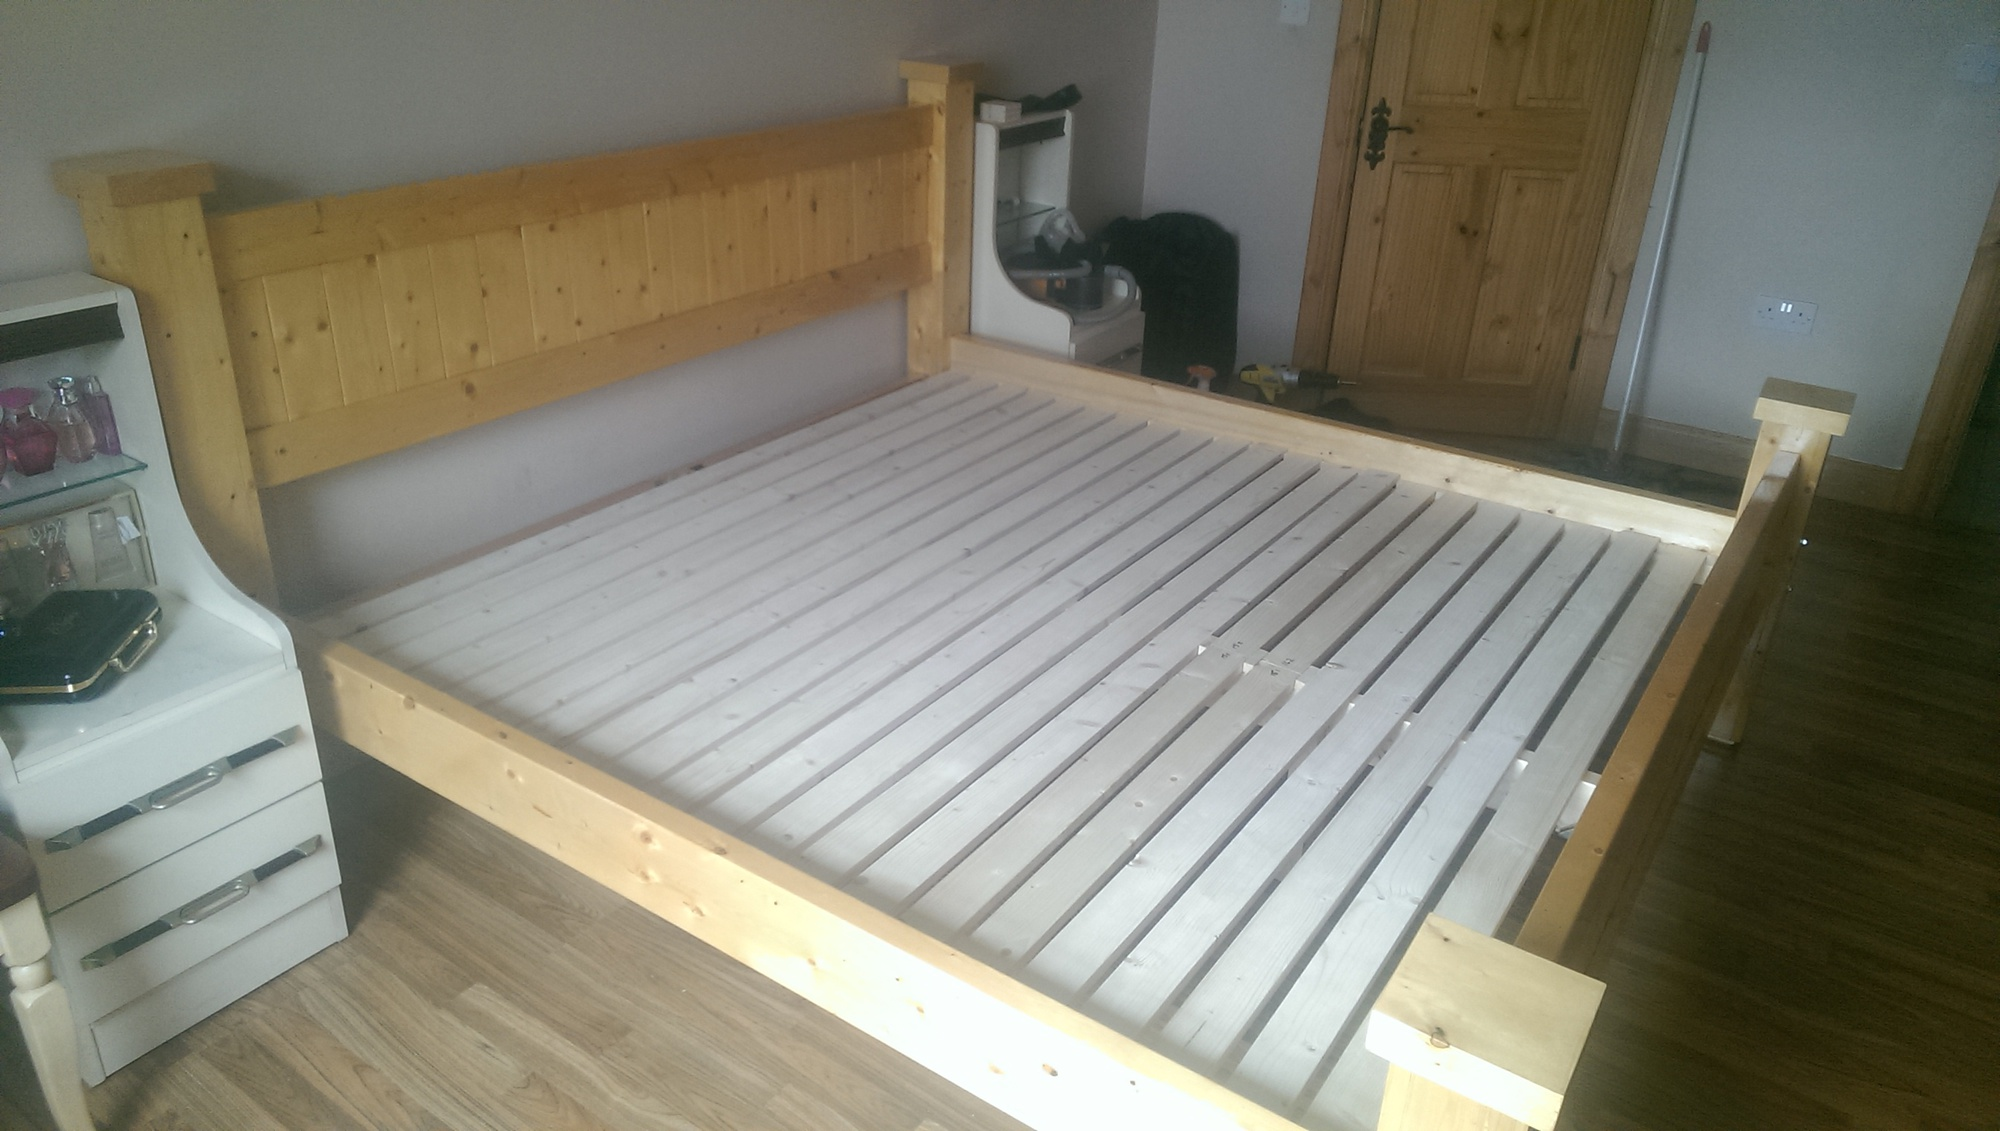 How To Add Mattress Support Slats to Bed Frame - Page 2 - Router Forums